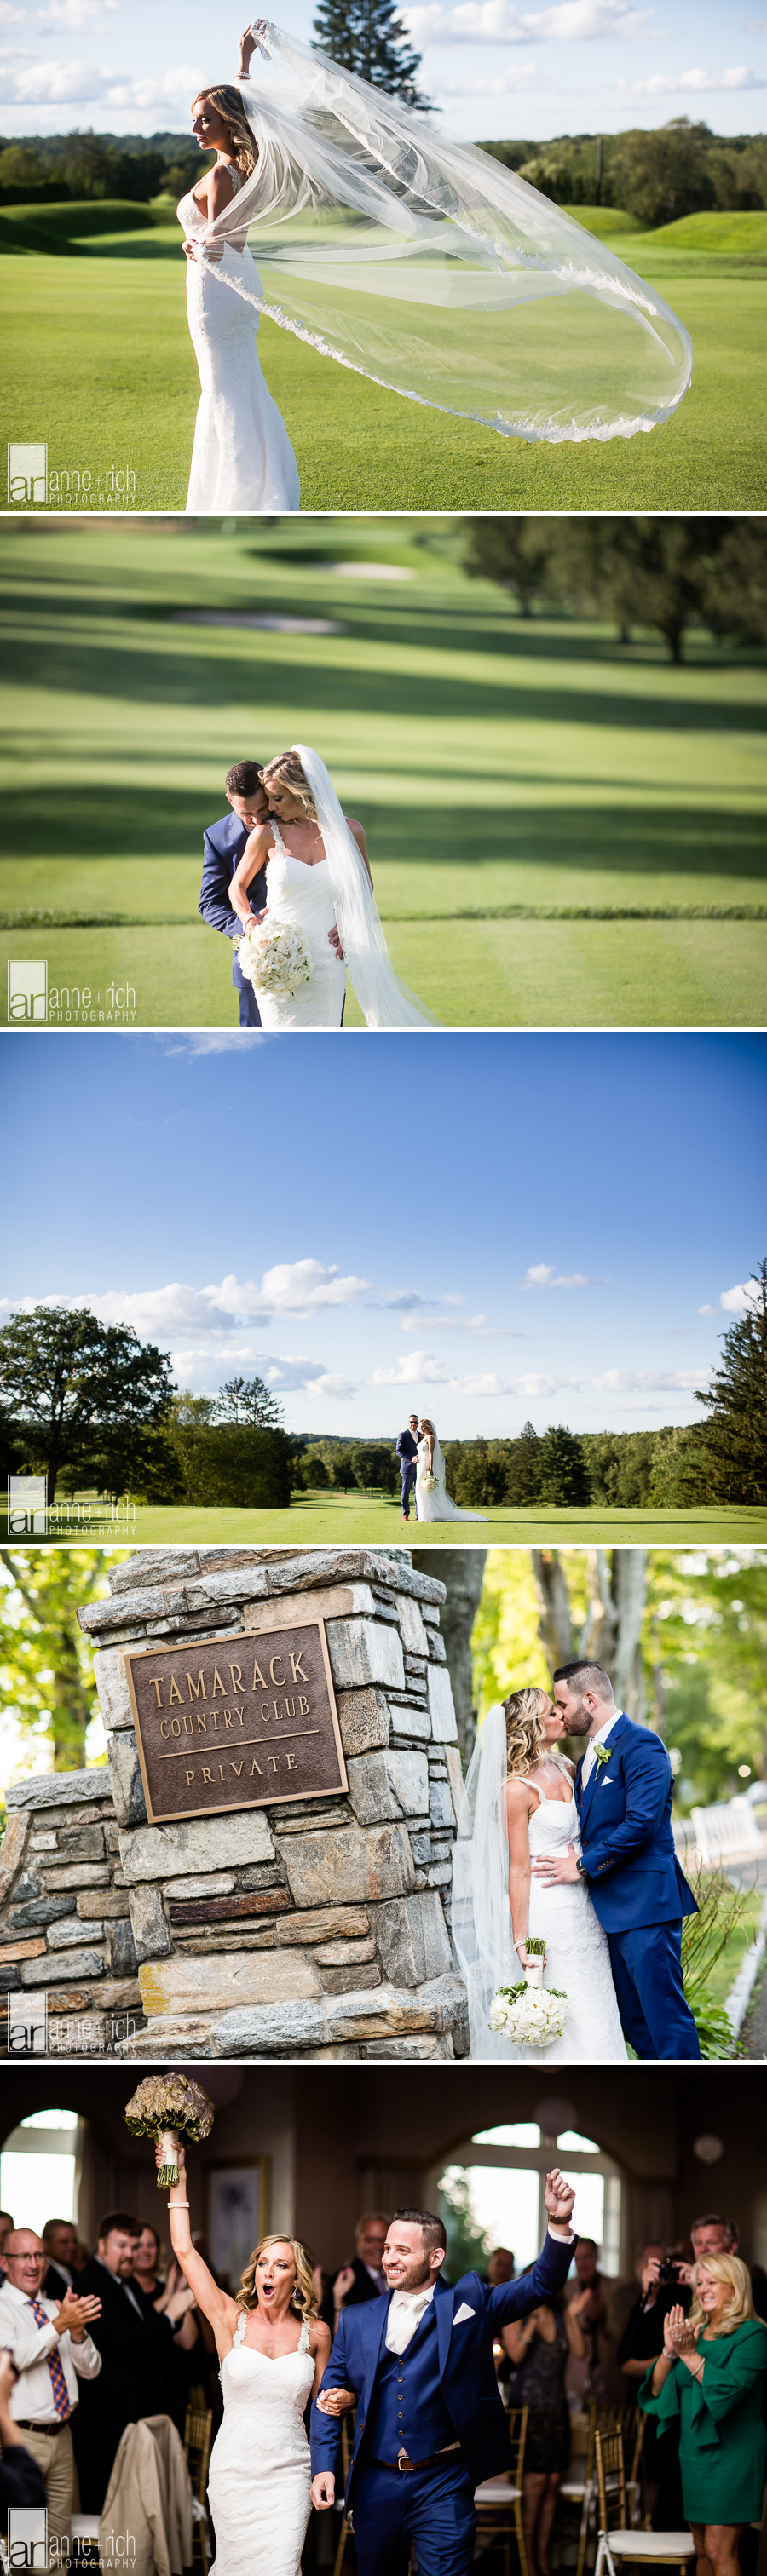 tamarack_country_club_wedding09